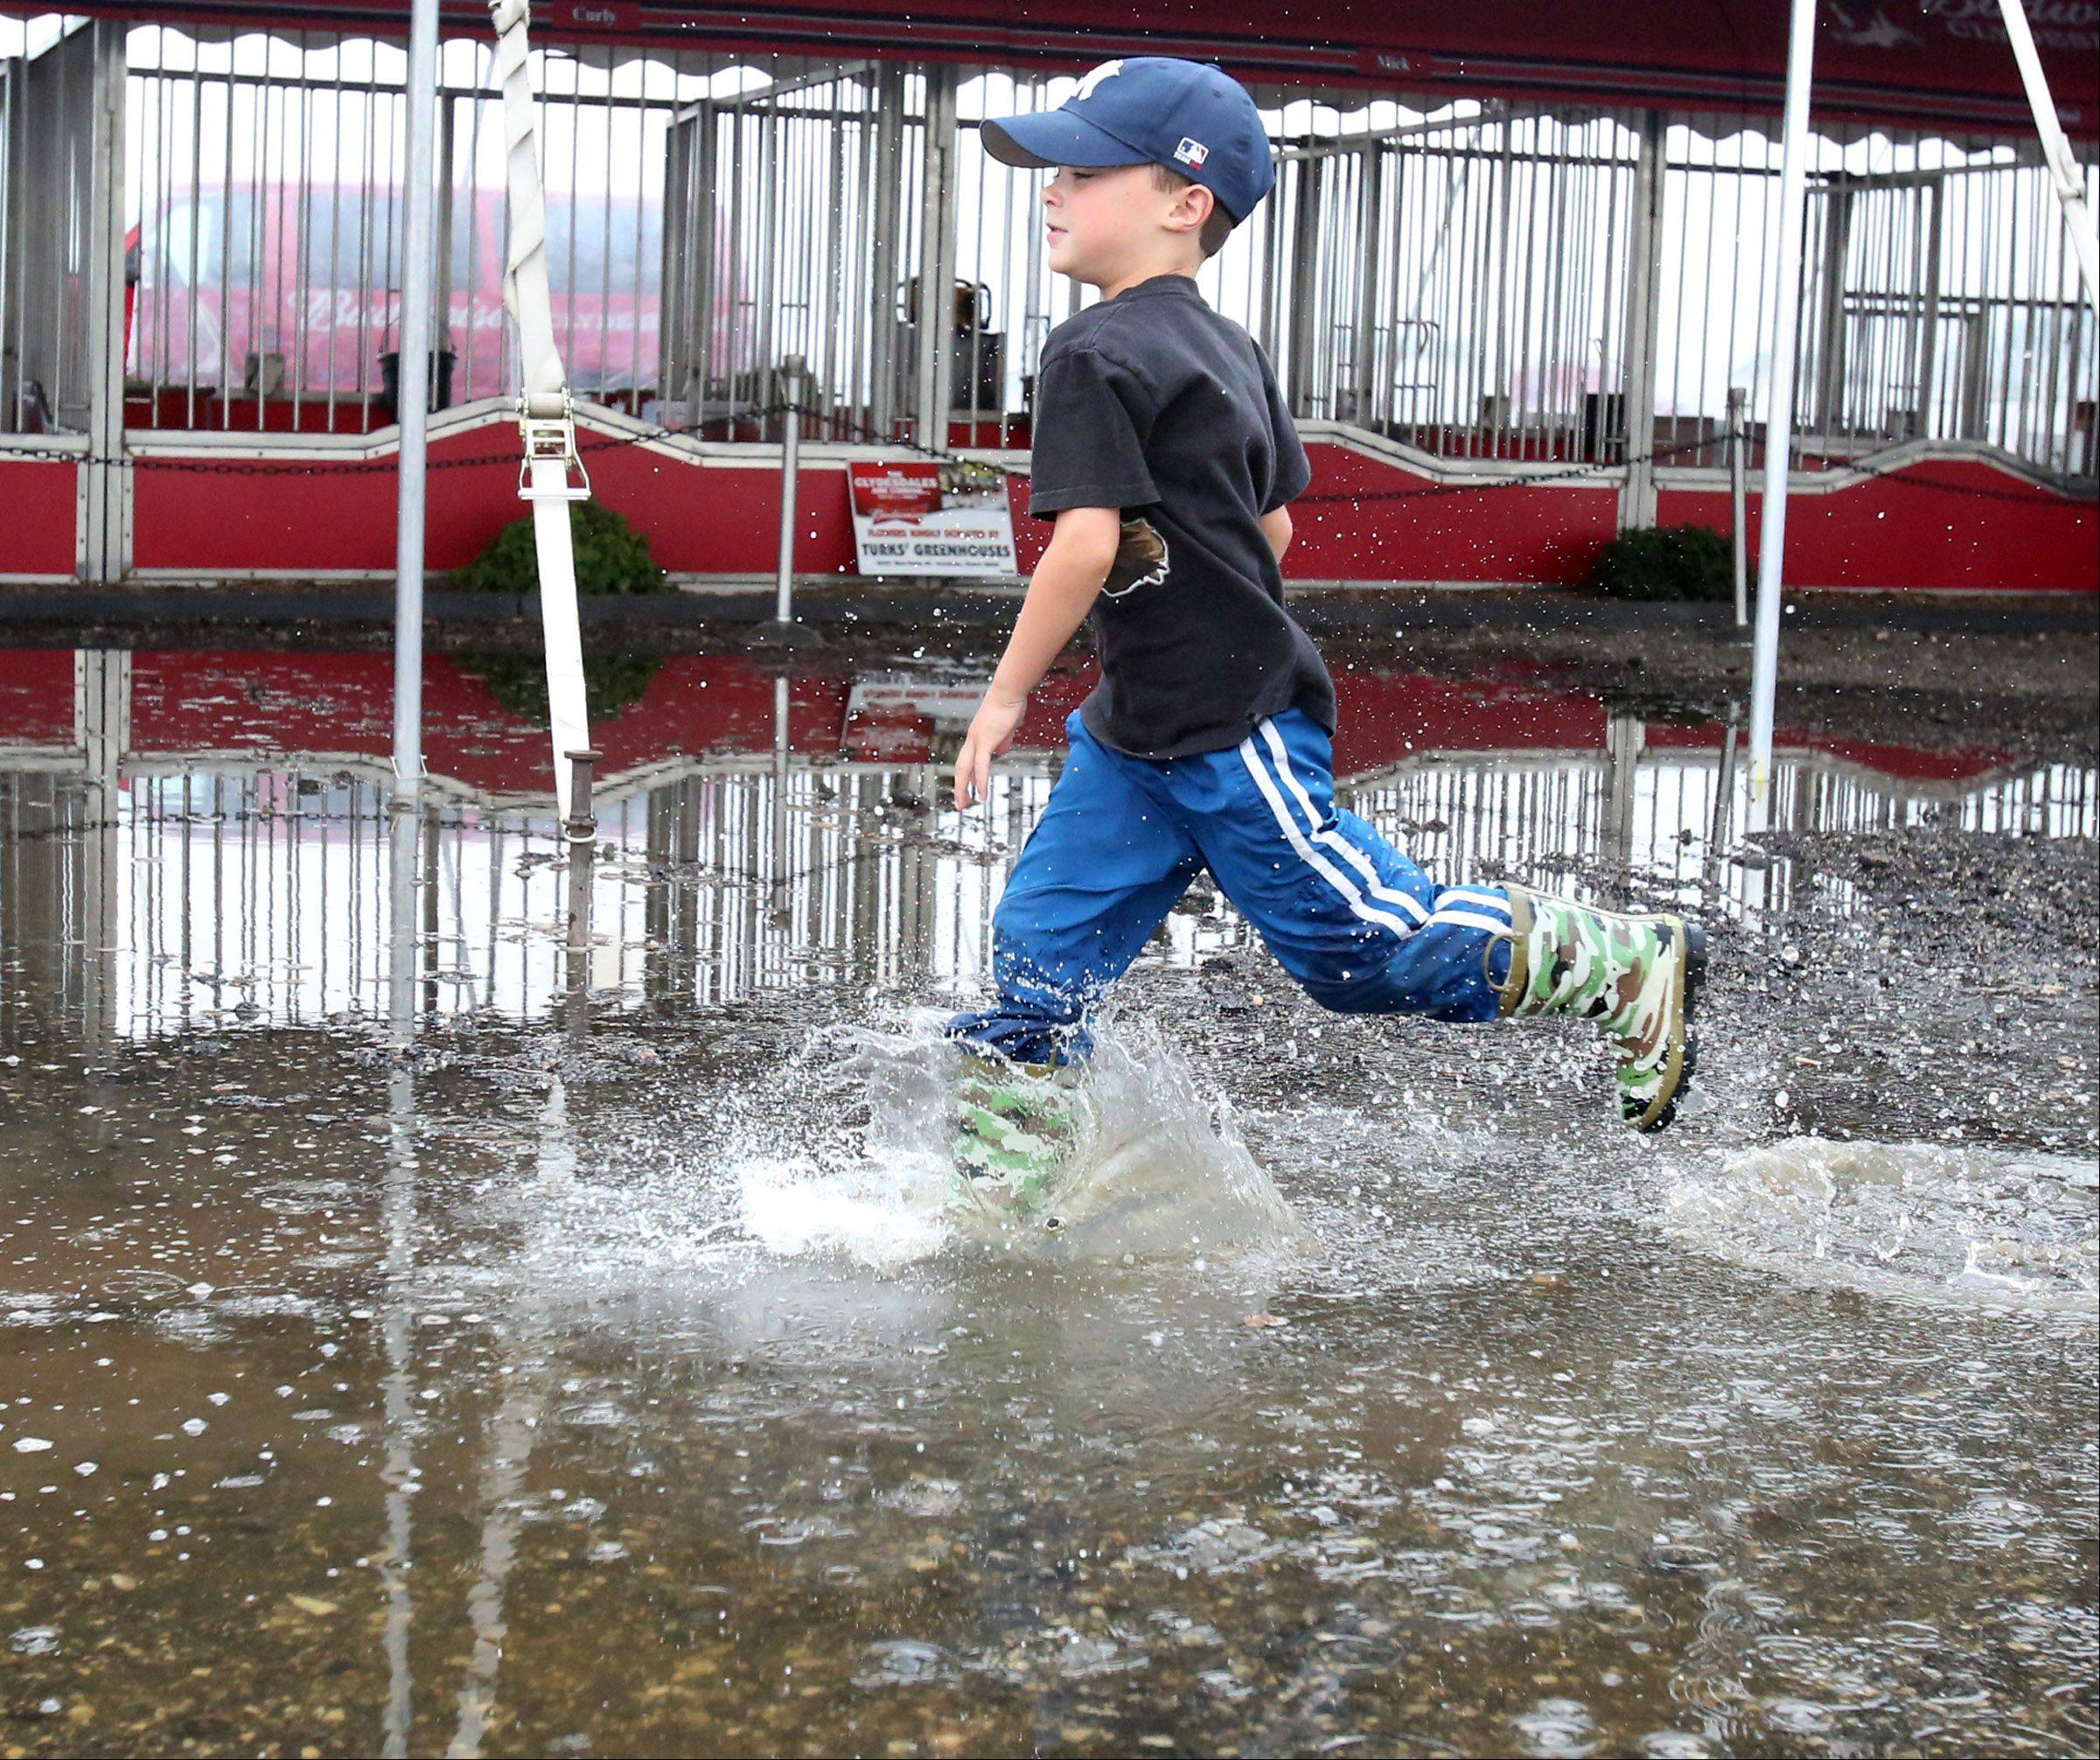 Aidan Bechard, 6, of Grayslake runs through a rain puddle.